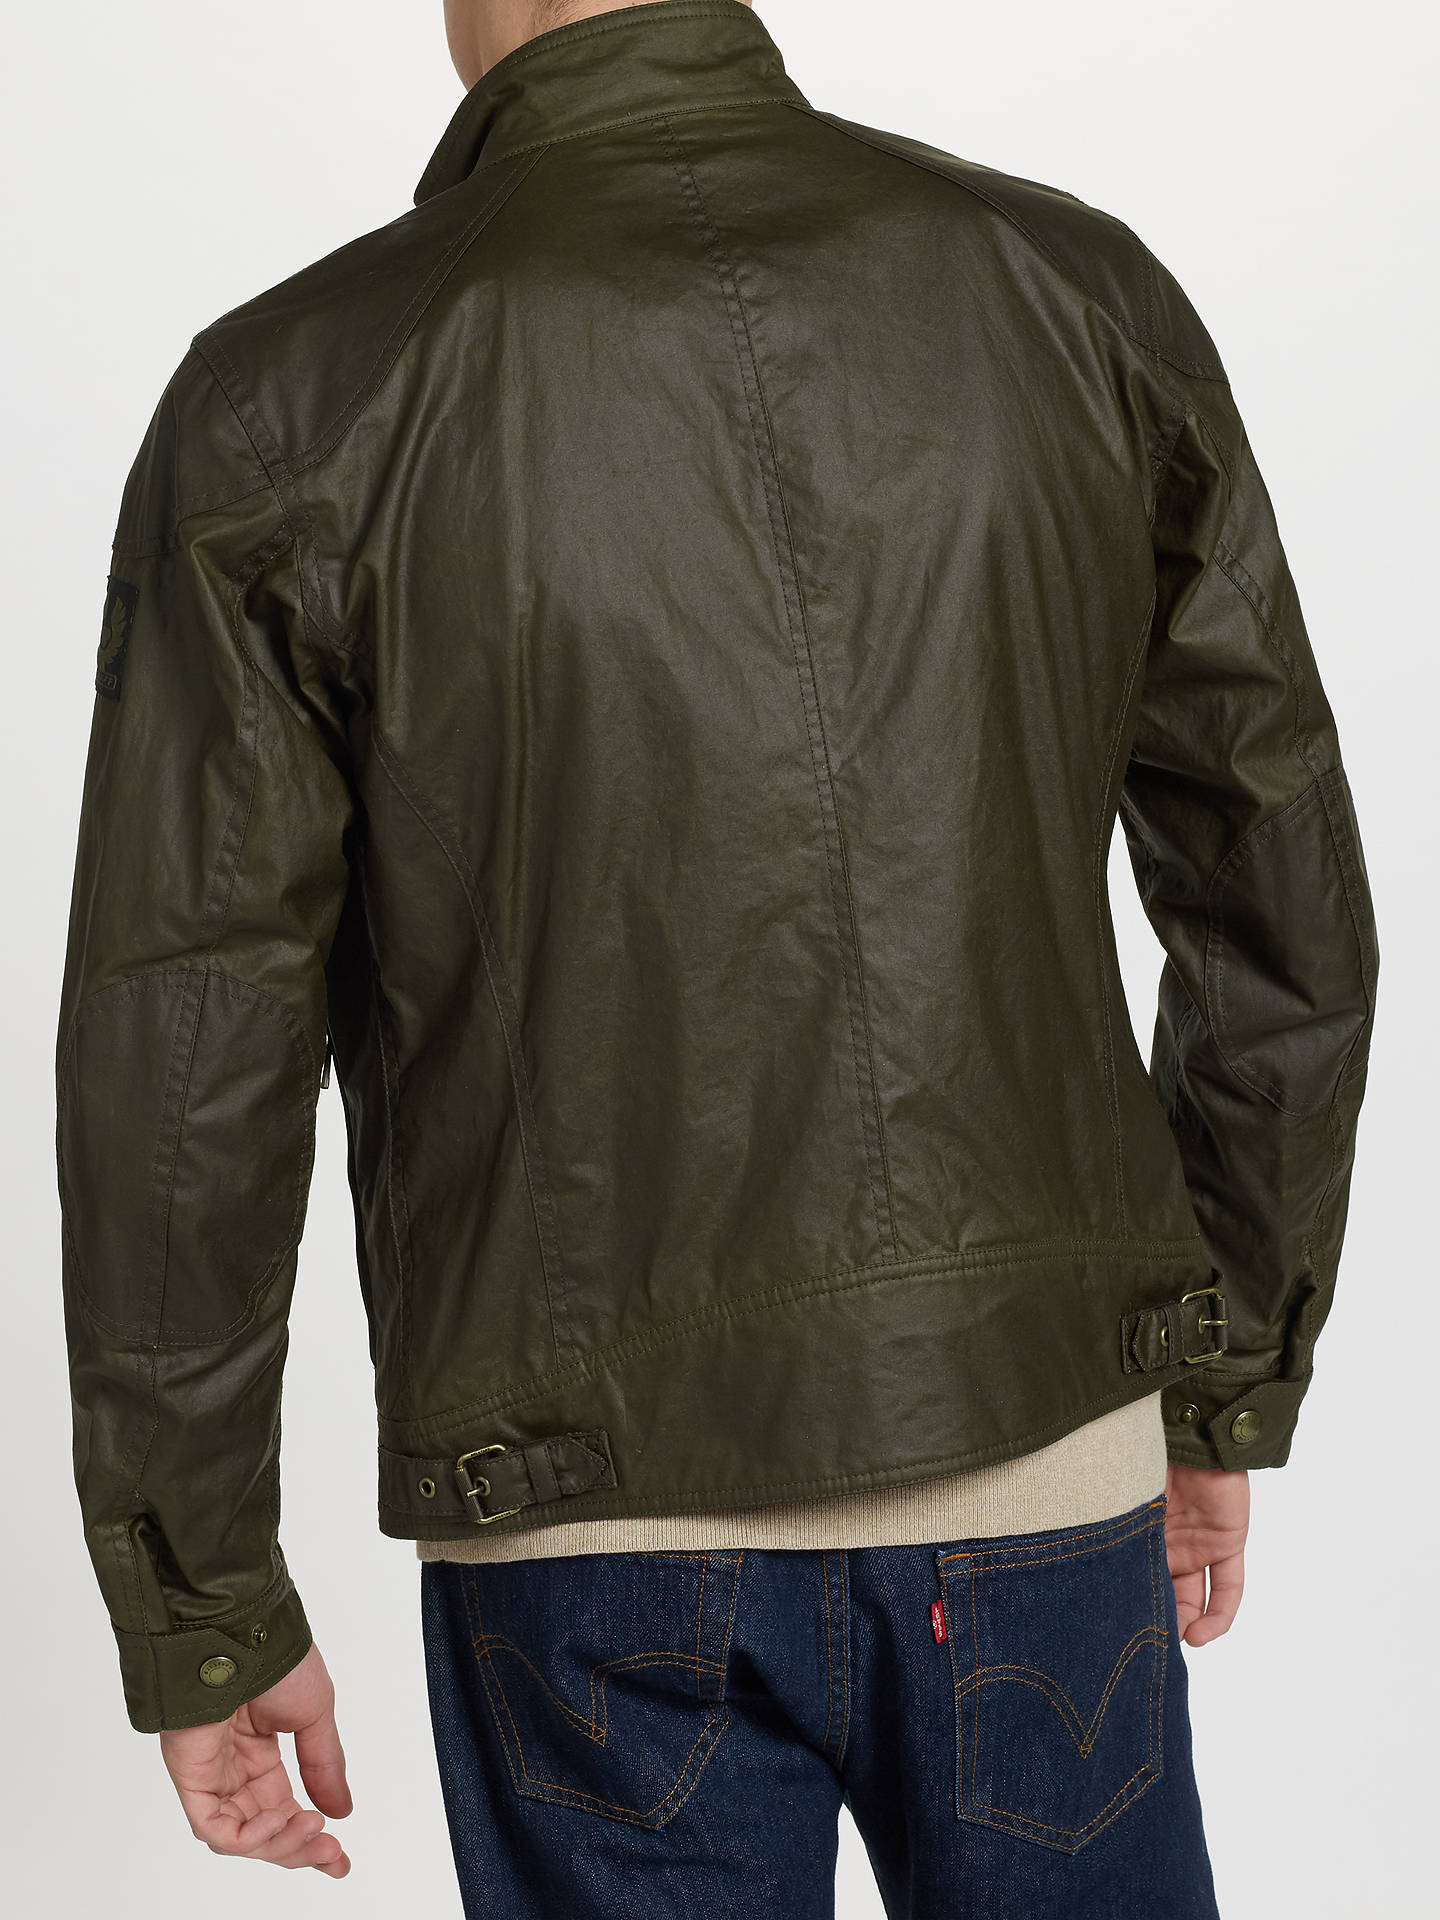 BuyBelstaff Racemaster Blouson Jacket, Faded Olive, 48L Online at johnlewis.com